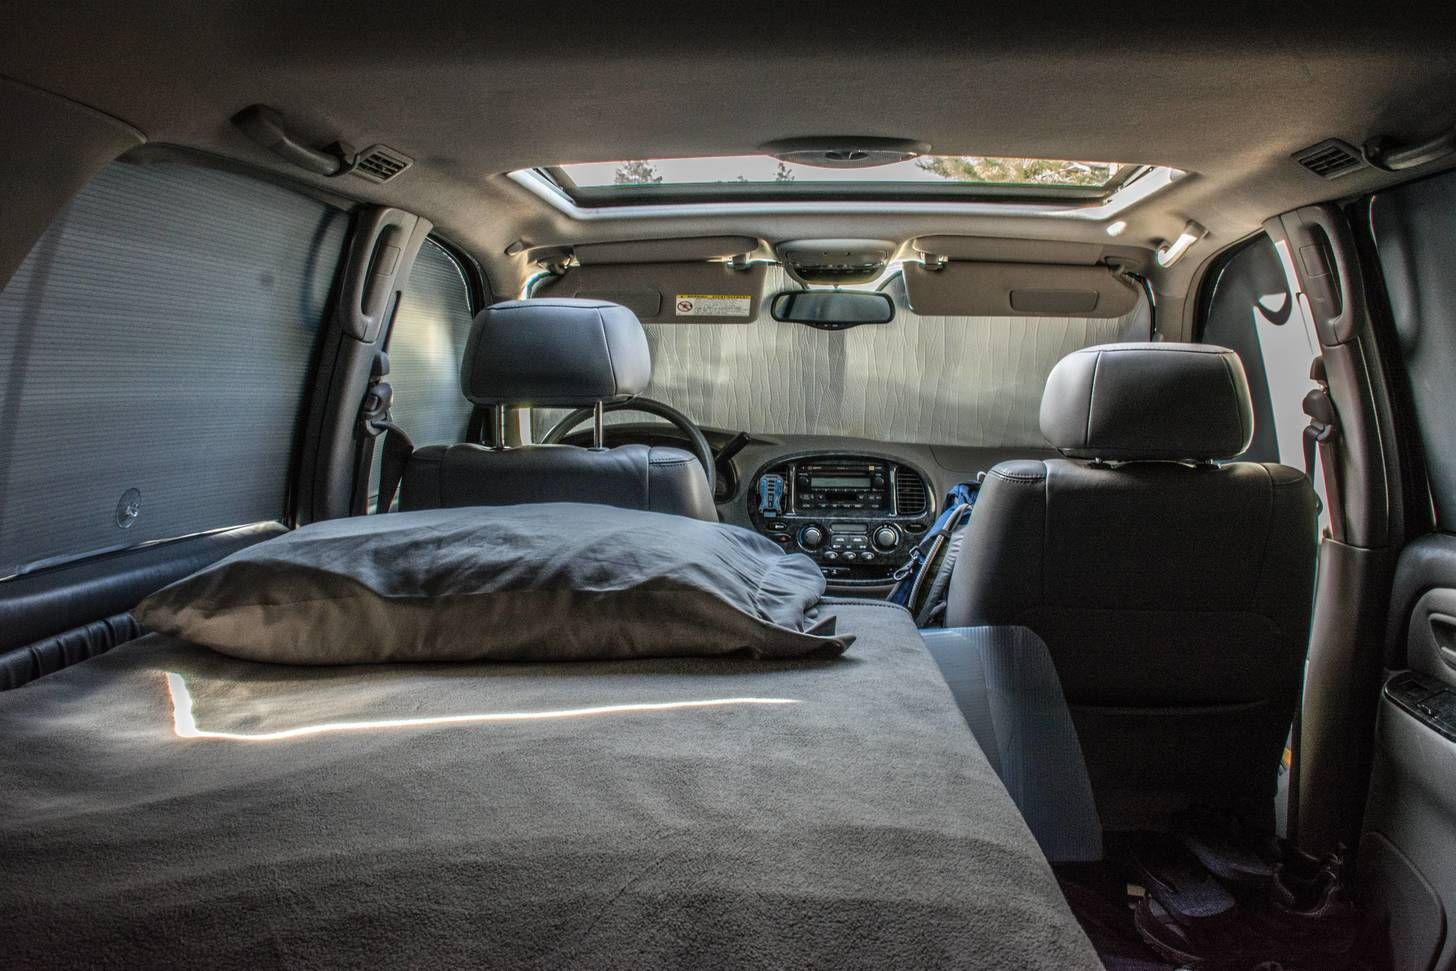 Suv Camping Setup With Images Suv Camping Suv Camper Best Suv